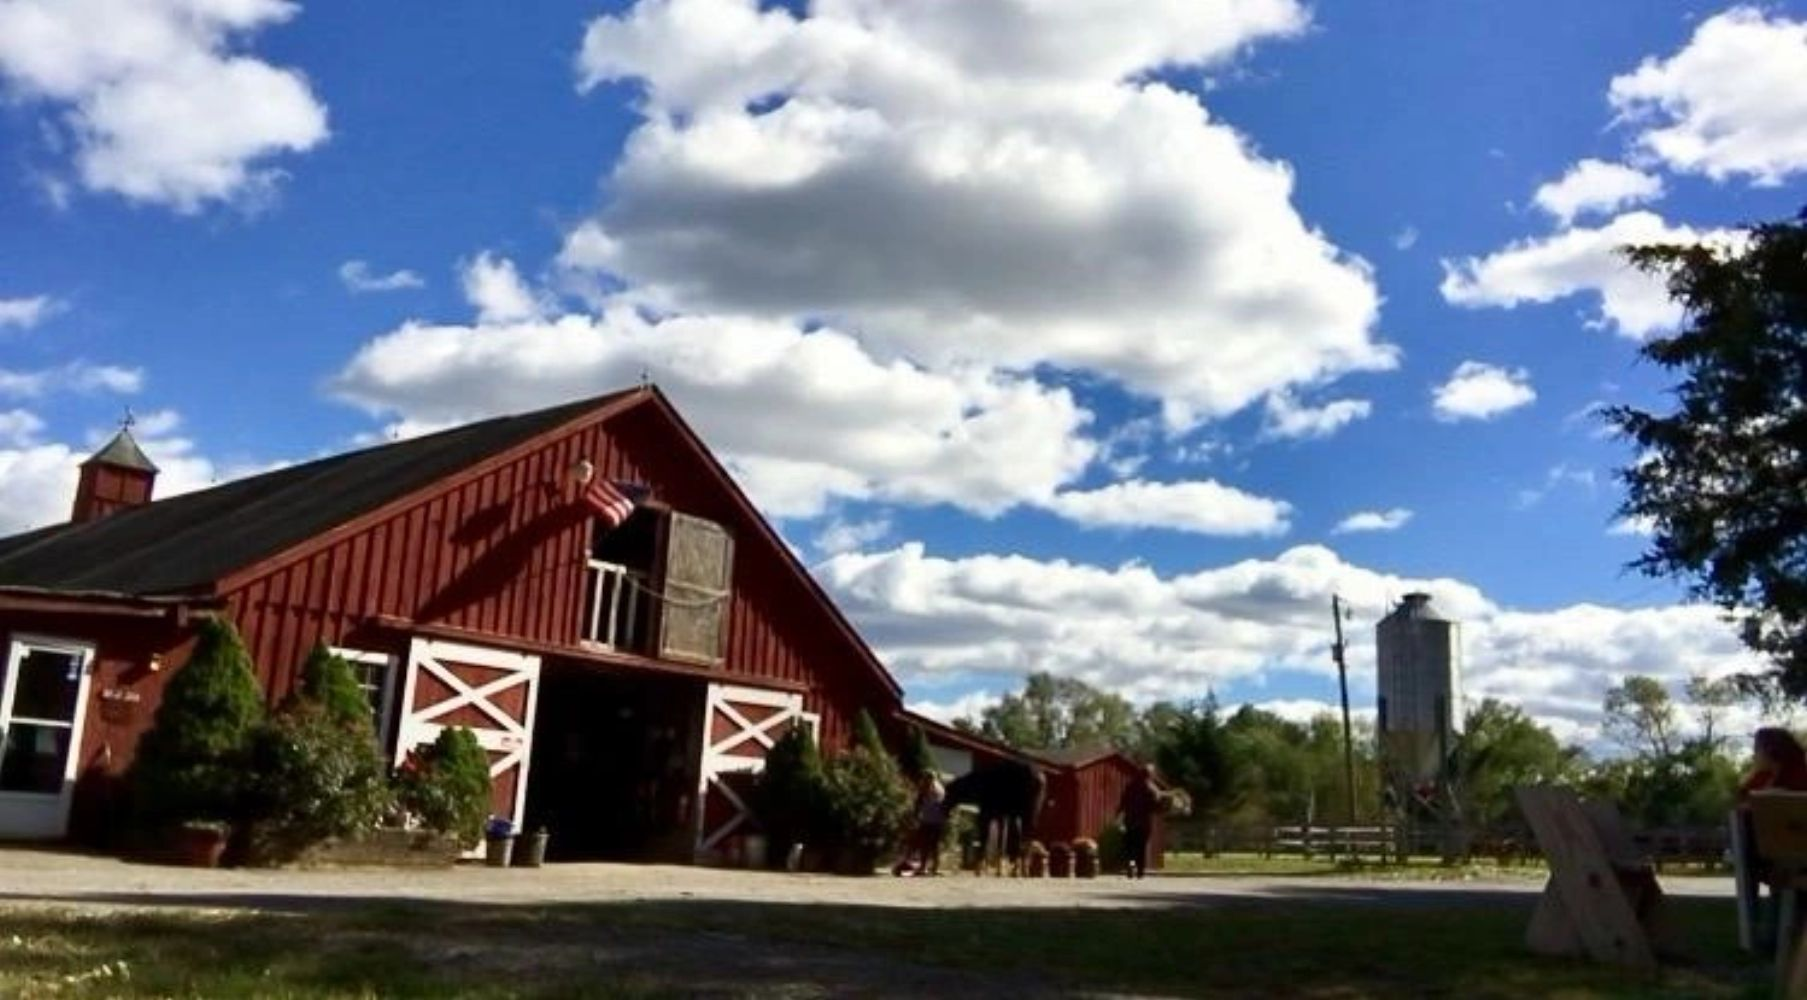 horse and owners in daily life in front of red barn with blue sky